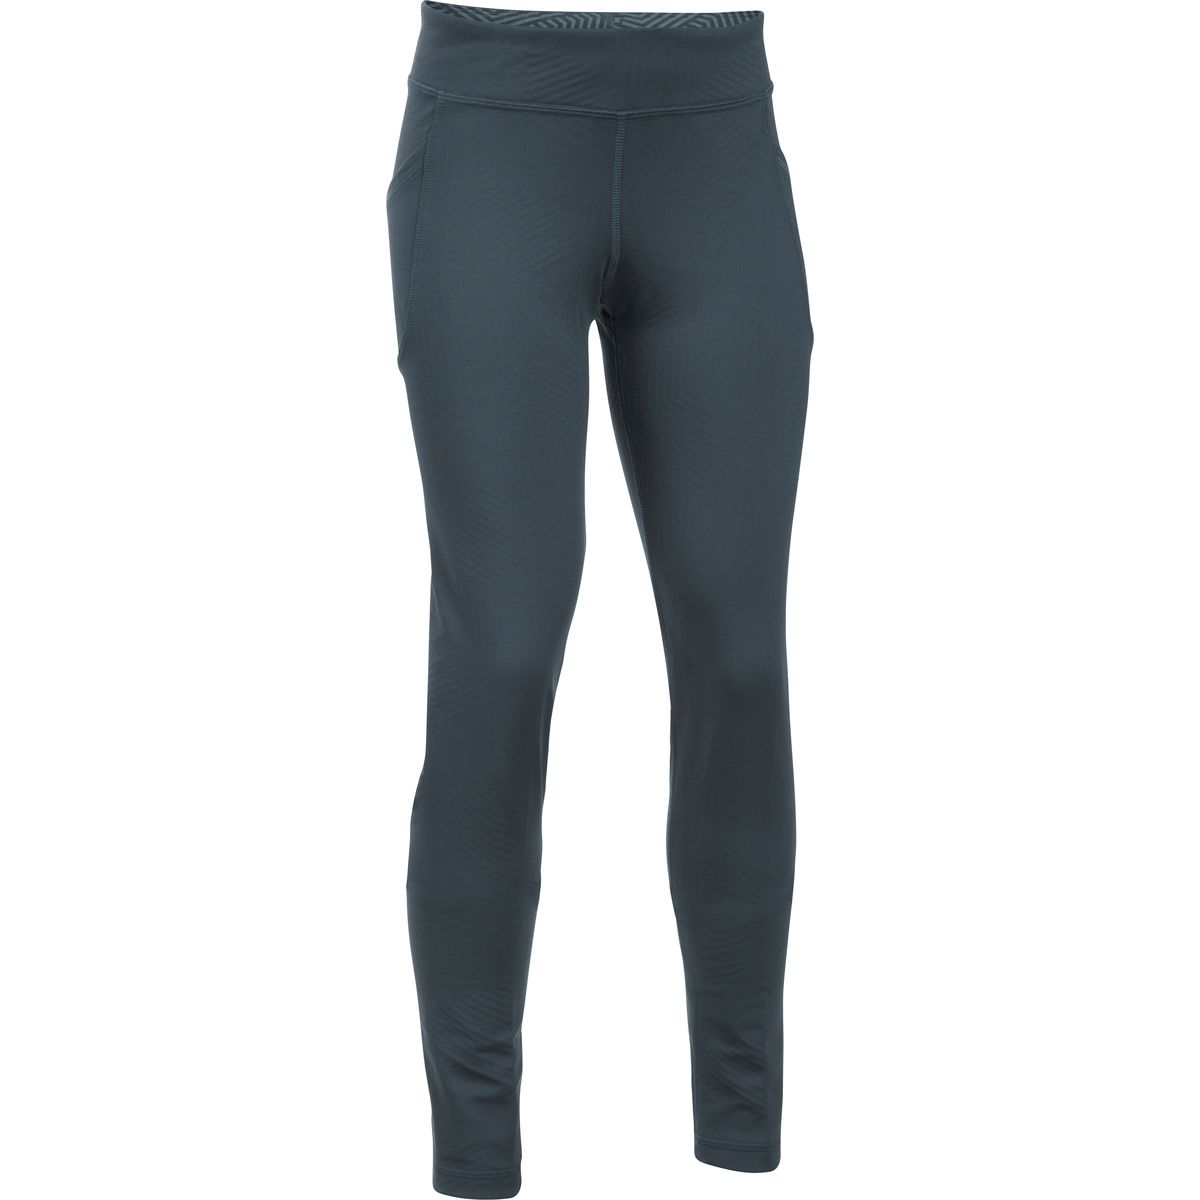 Under Armour Exclusive Coldgear Infrared Leggings - Girls